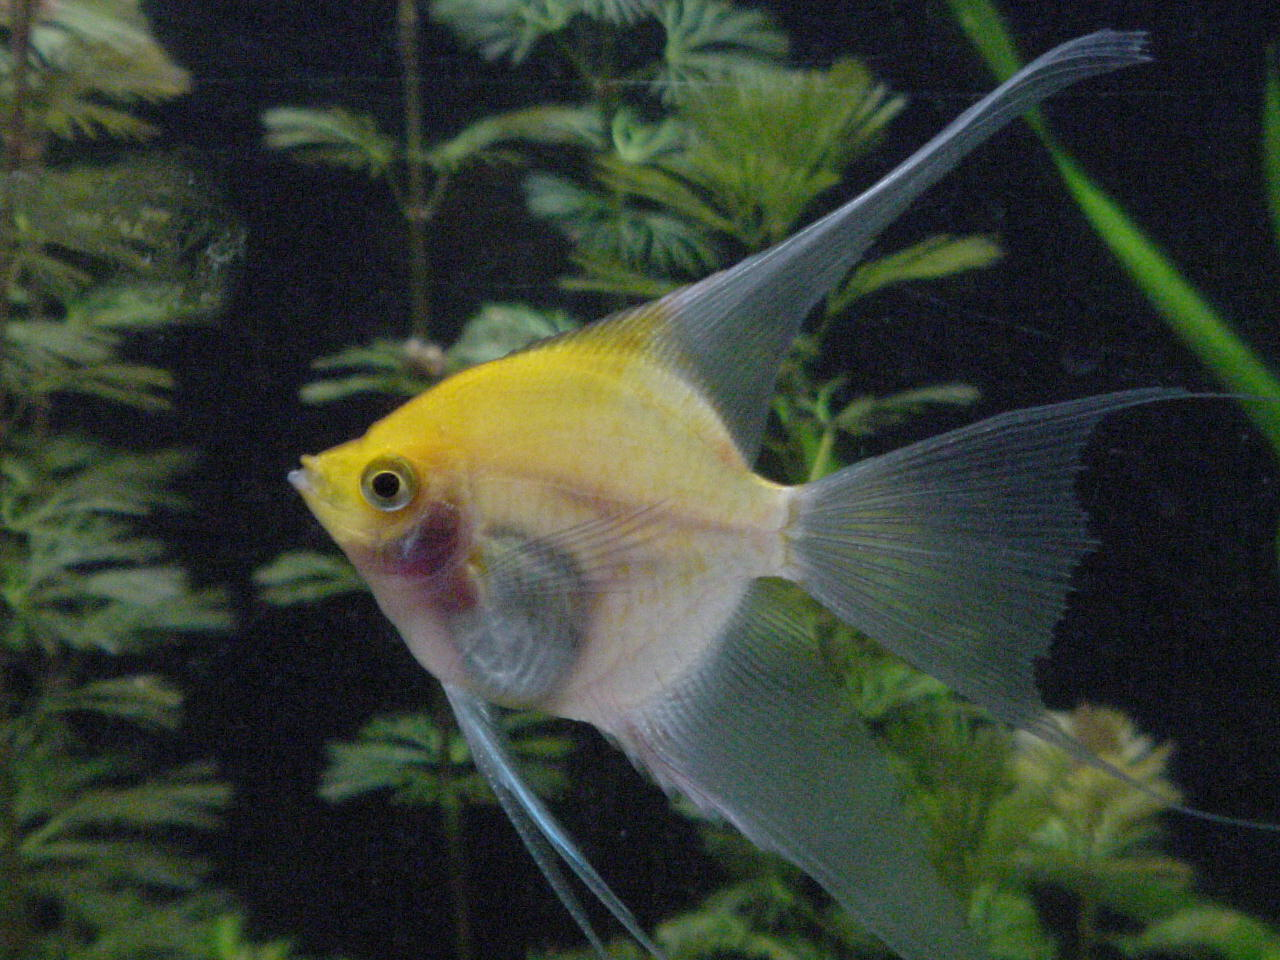 Freshwater aquarium fish silver with red fins - Angelfish